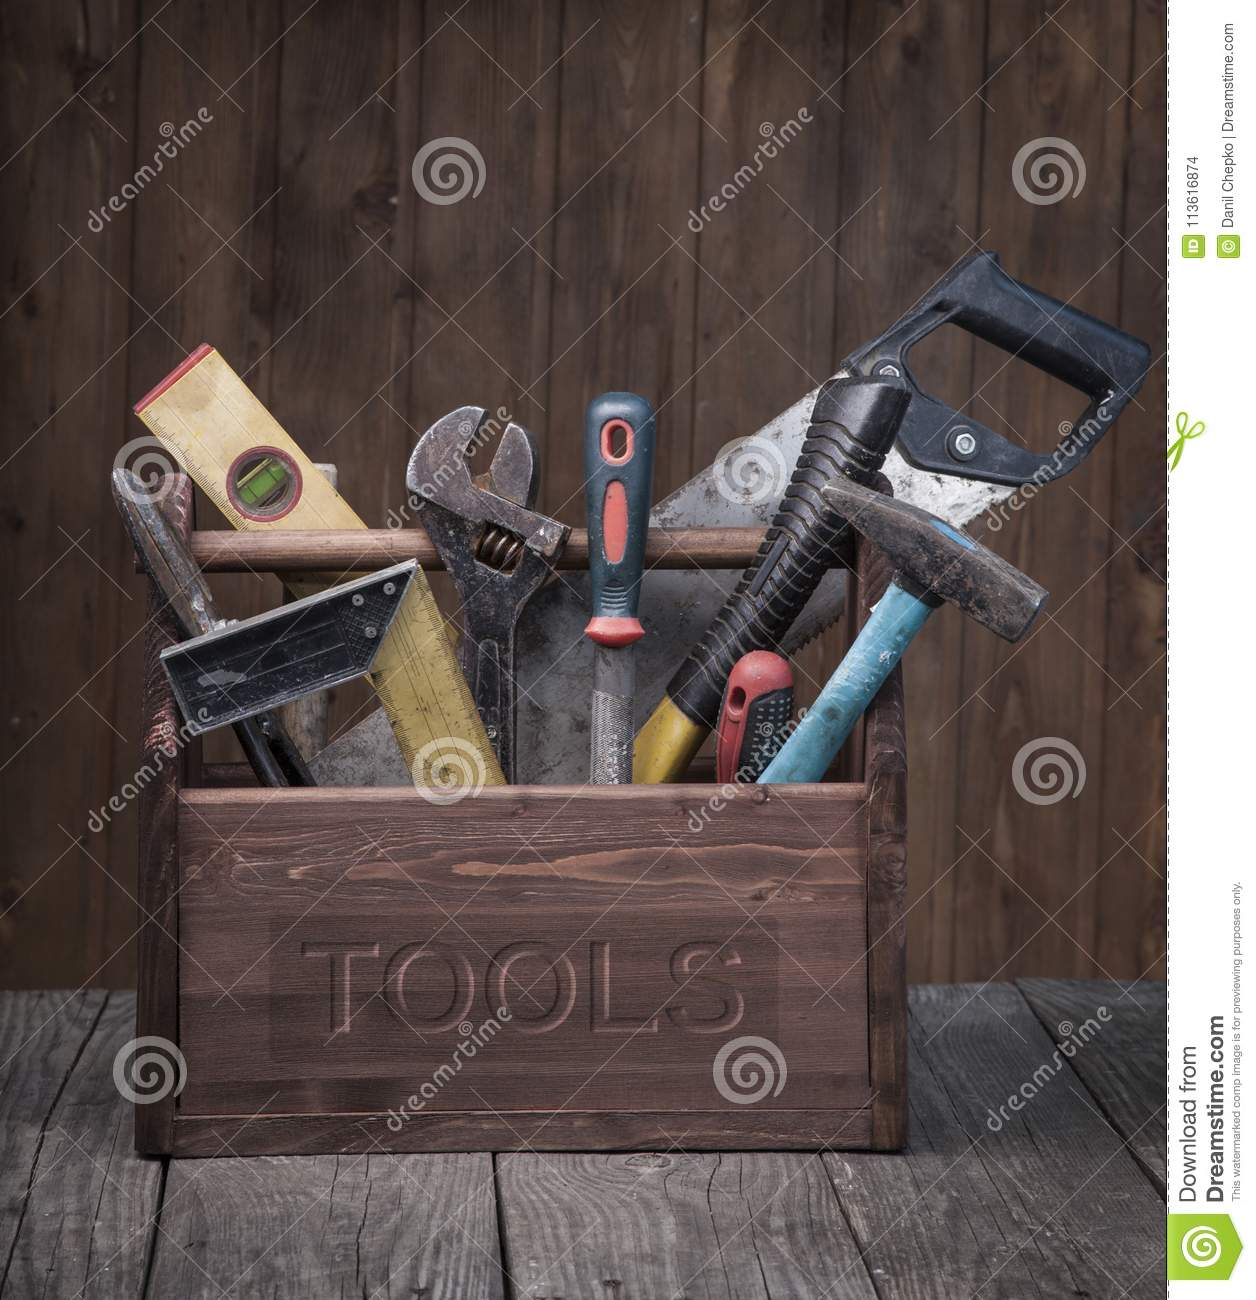 Grungy old tools on a wooden background front view.